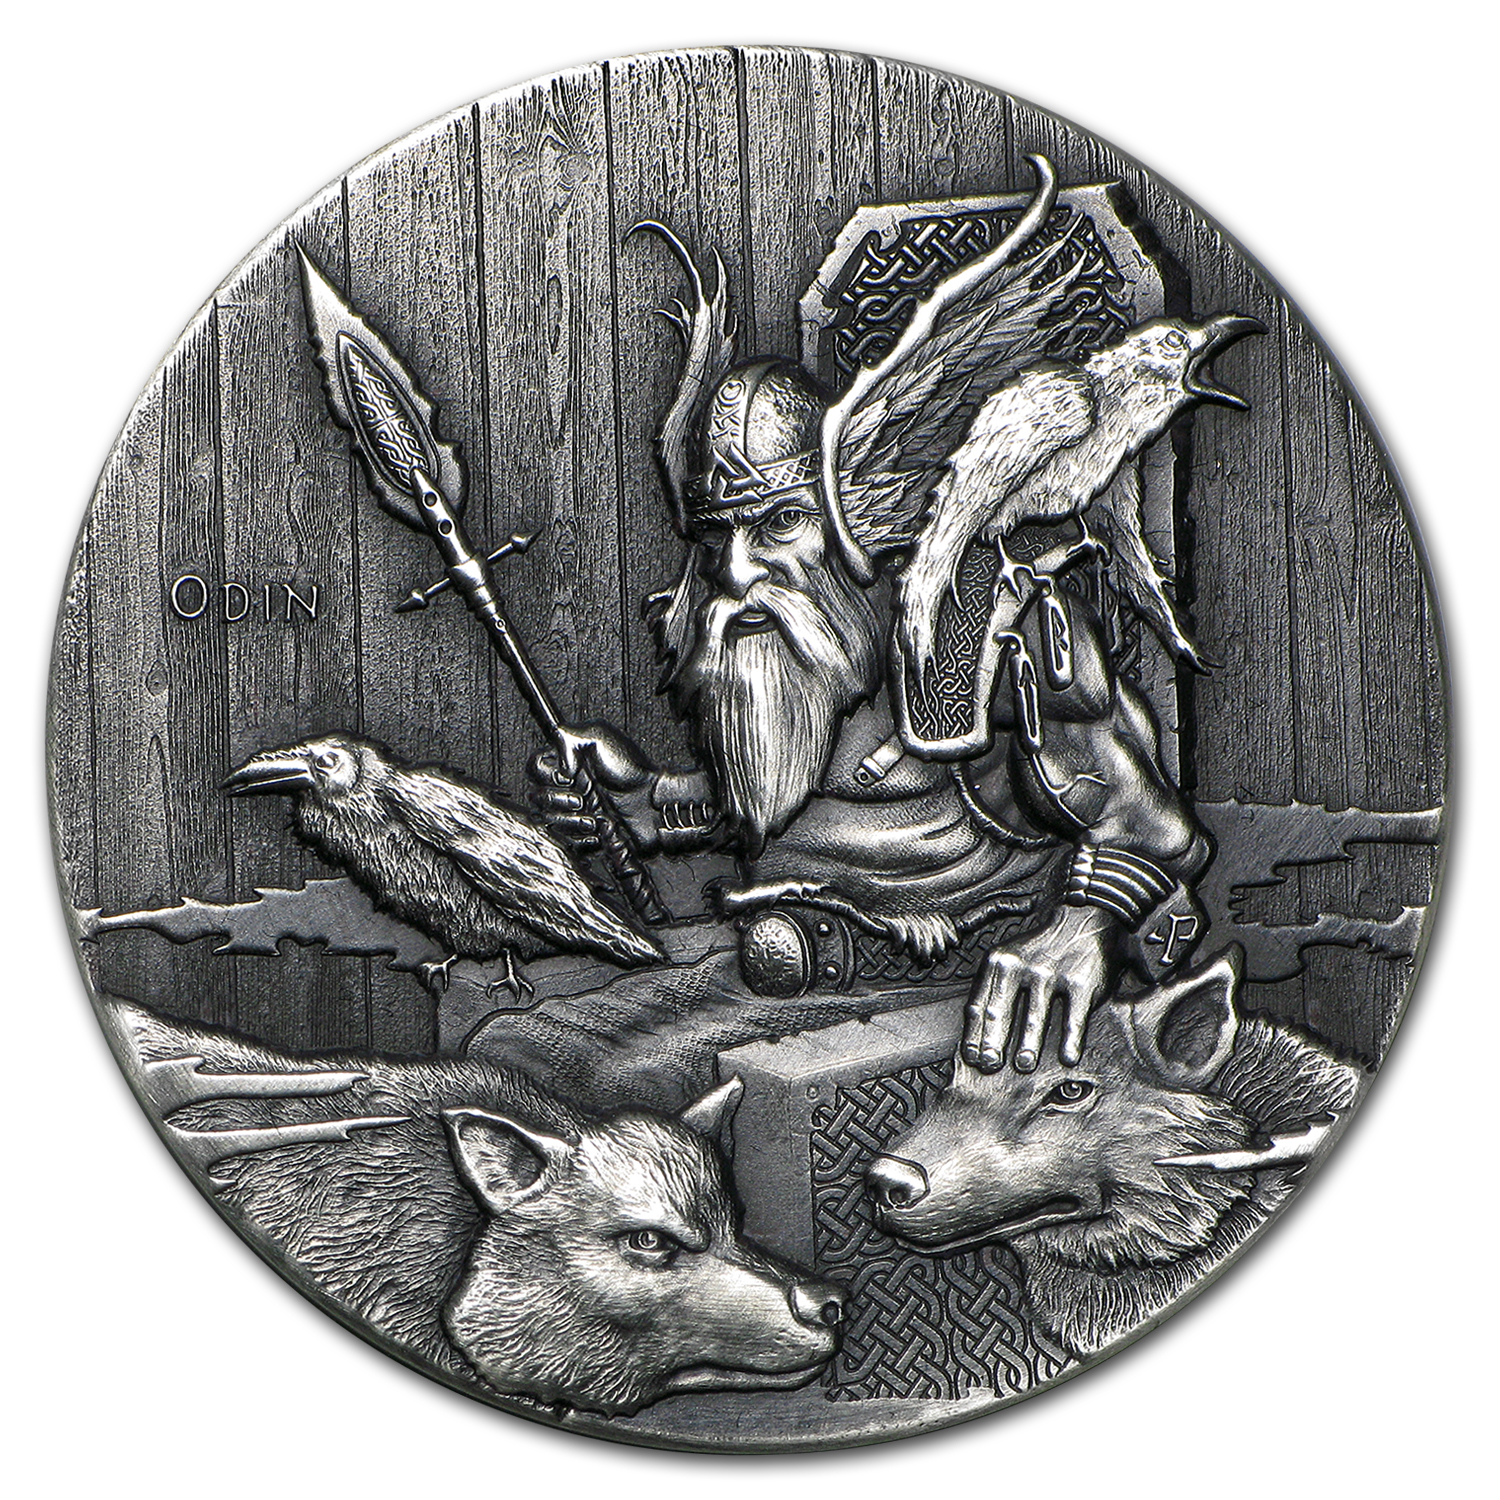 2015 2 oz Silver Coin Viking Series (Odin)